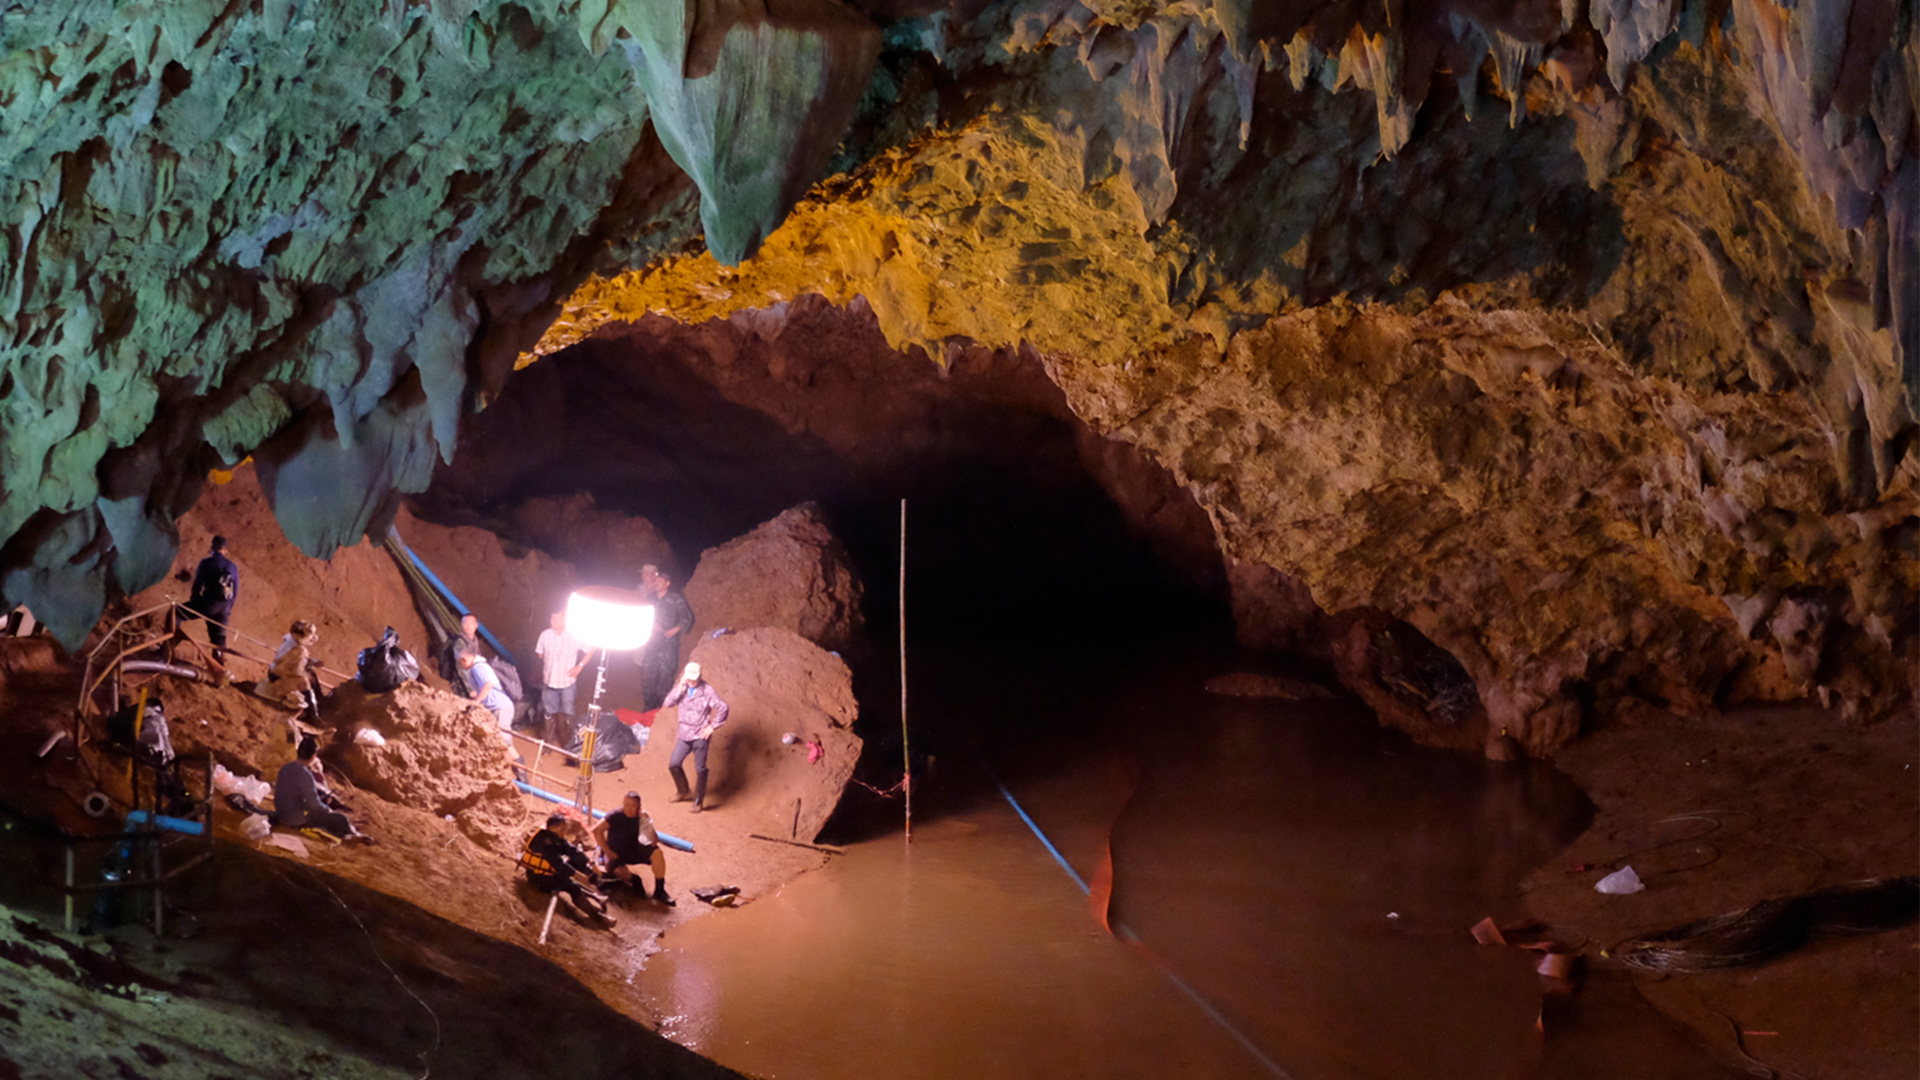 Rescue of soccer team in Thailand Cave